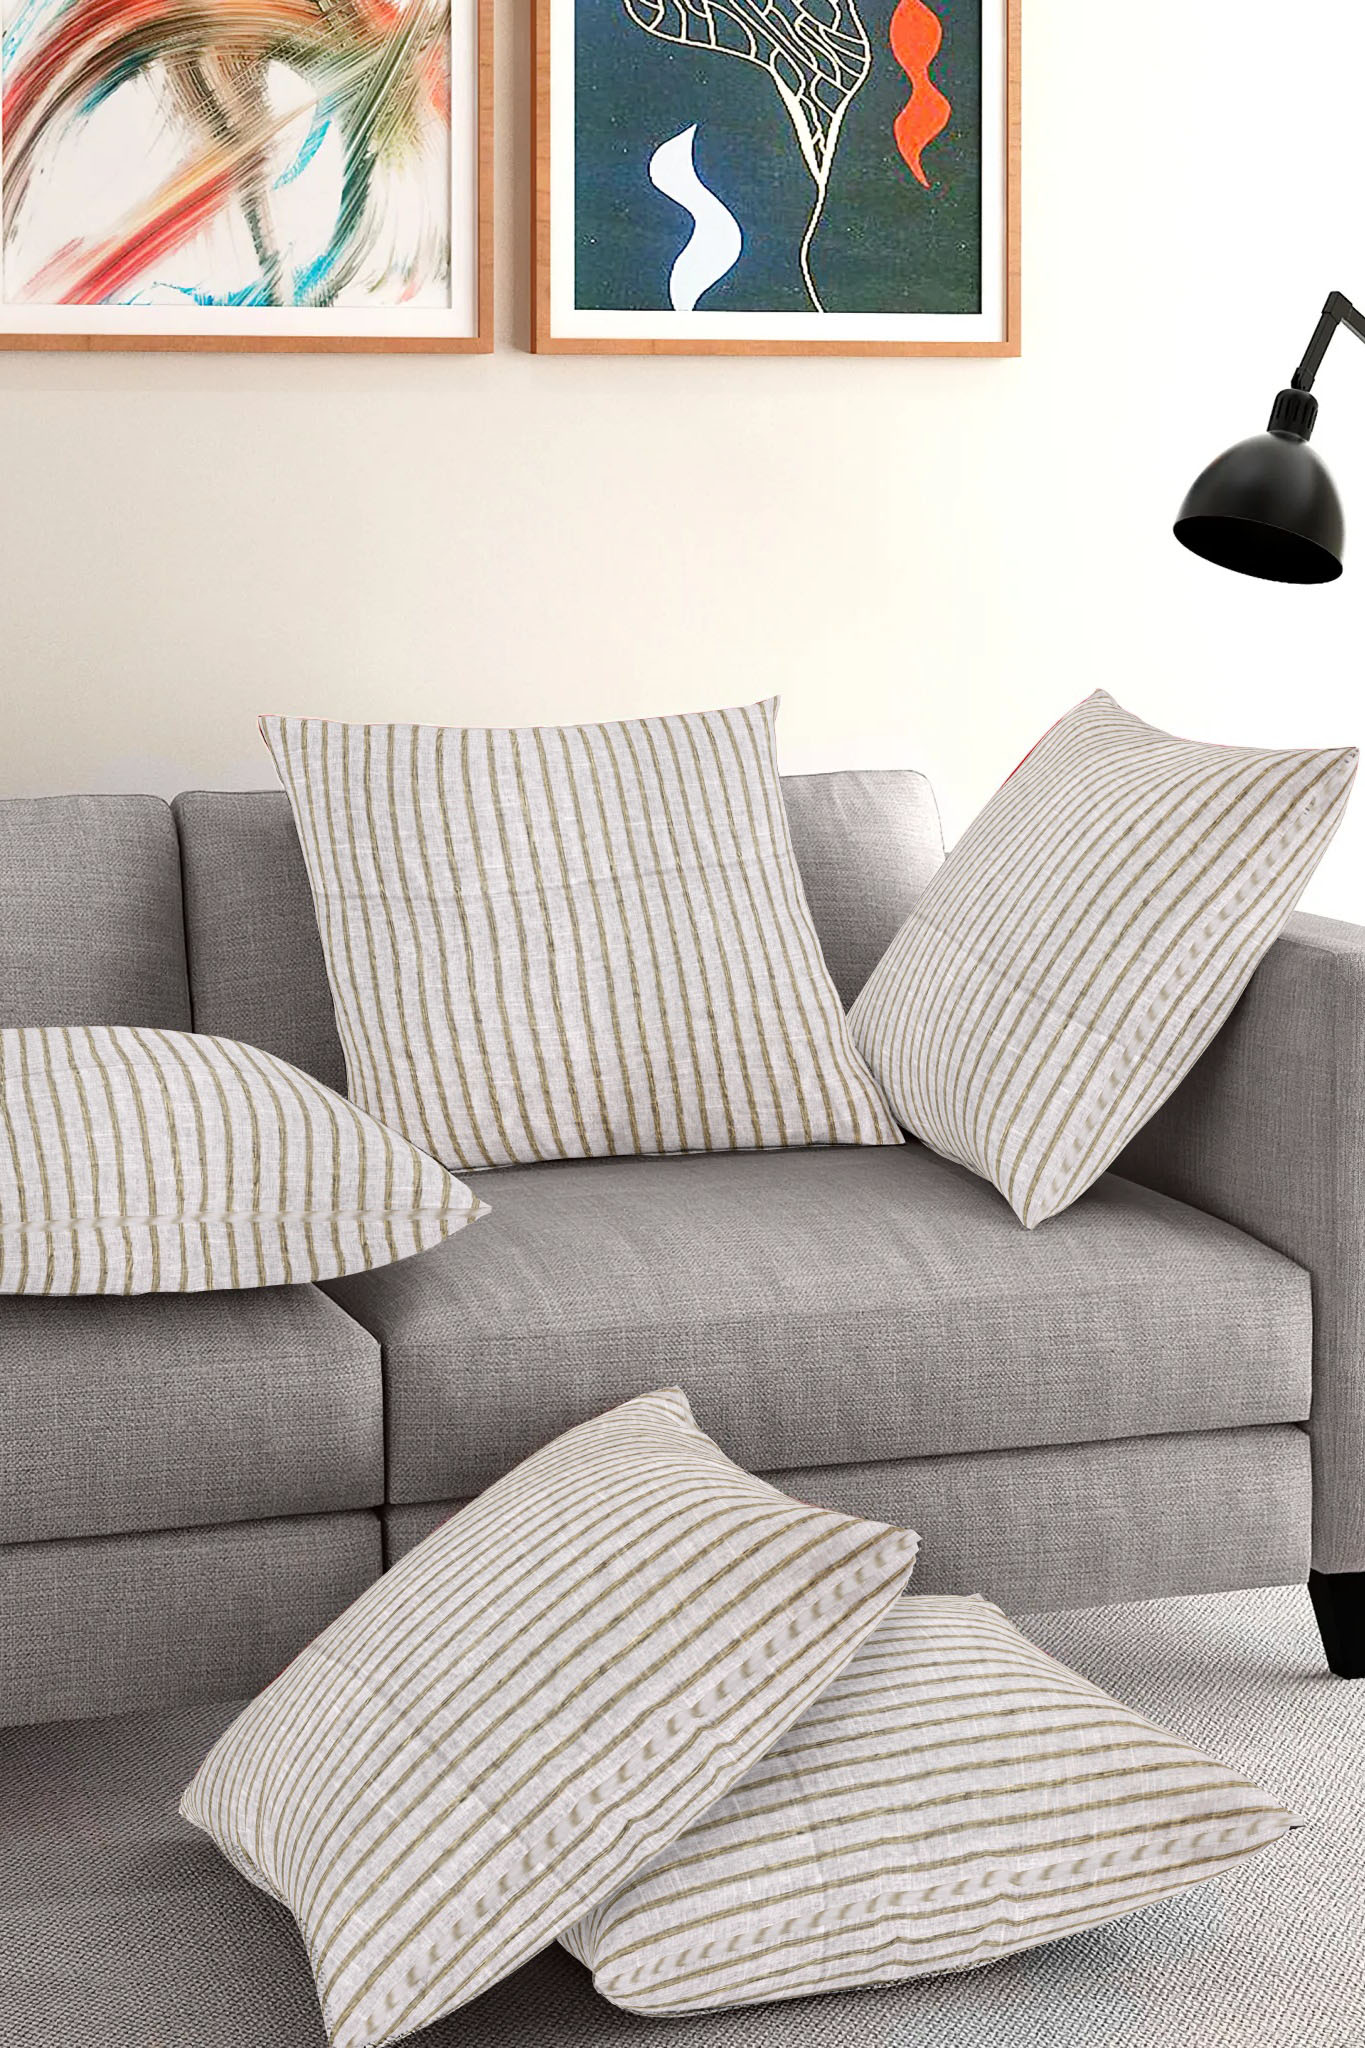 Set of 5-White Brown Cotton Cushion Cover-35405-16x16 Inches